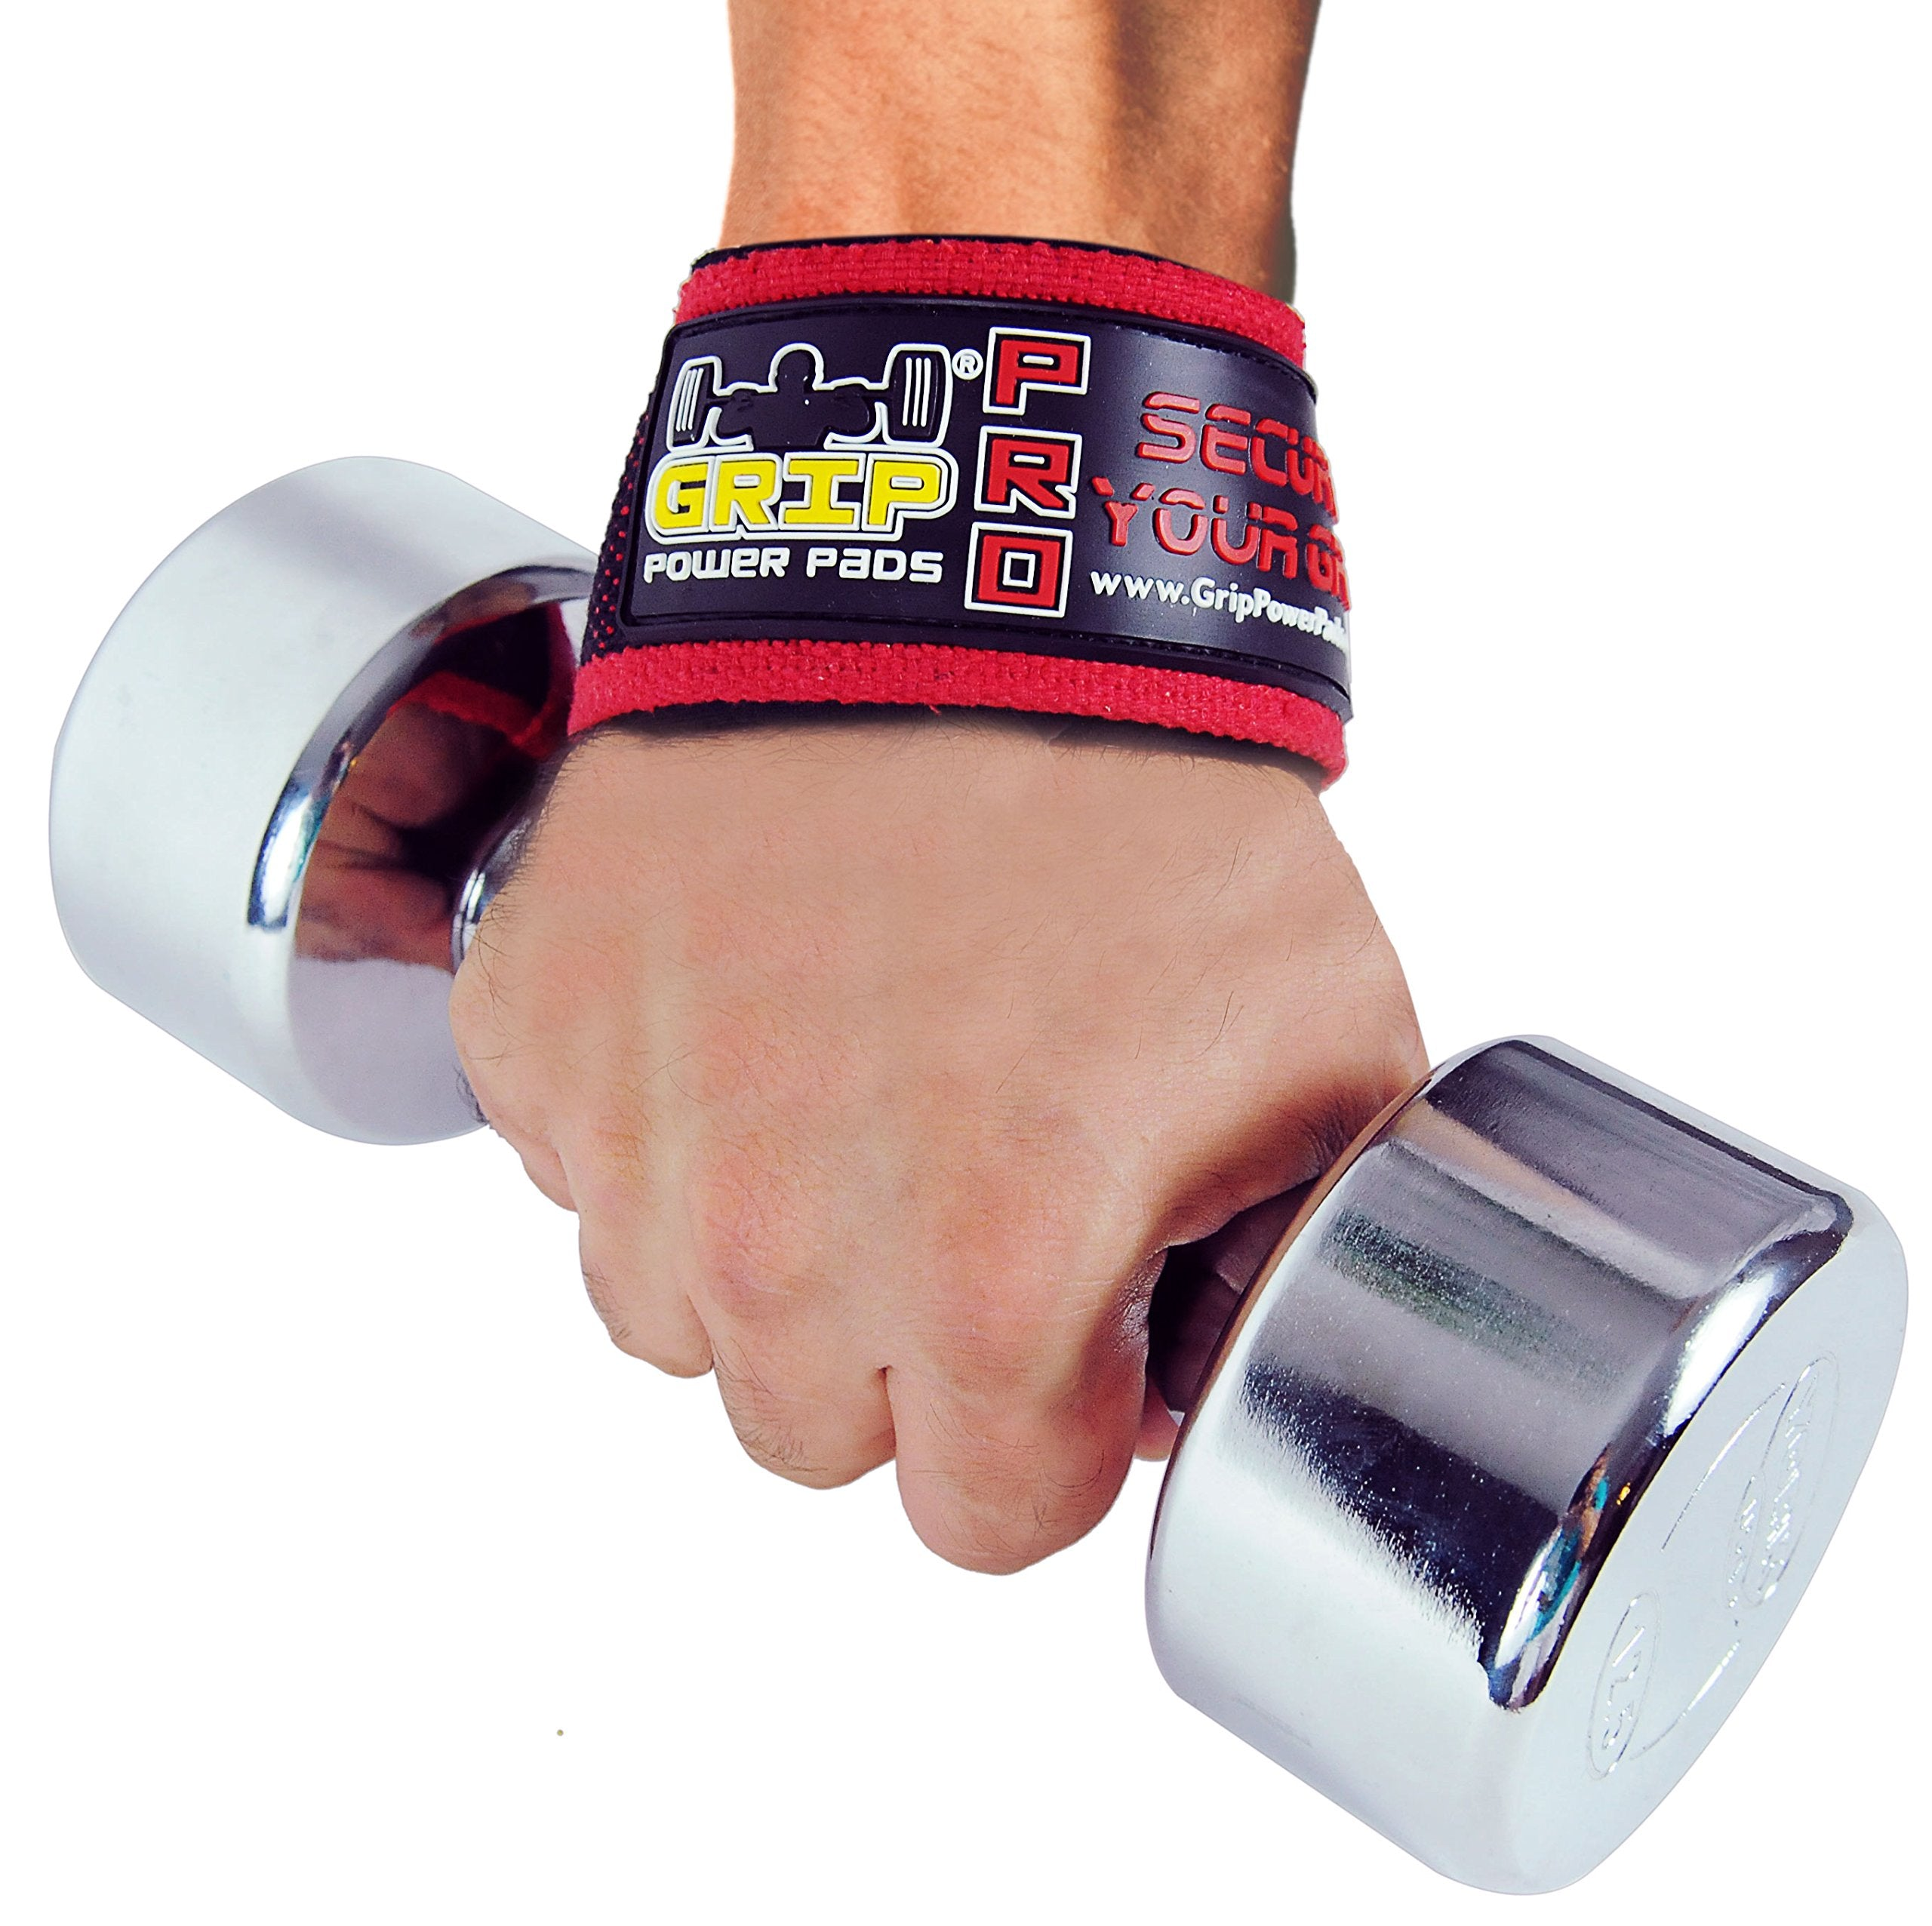 "Grip Power Pads PRO Level Cotton Lifting Straps with Neoprene Wrist Pad Support & Silicone Grip Enhancement - Up to 24"" Long Weightlifting Straps & 2"" Wide for Maximum Support"